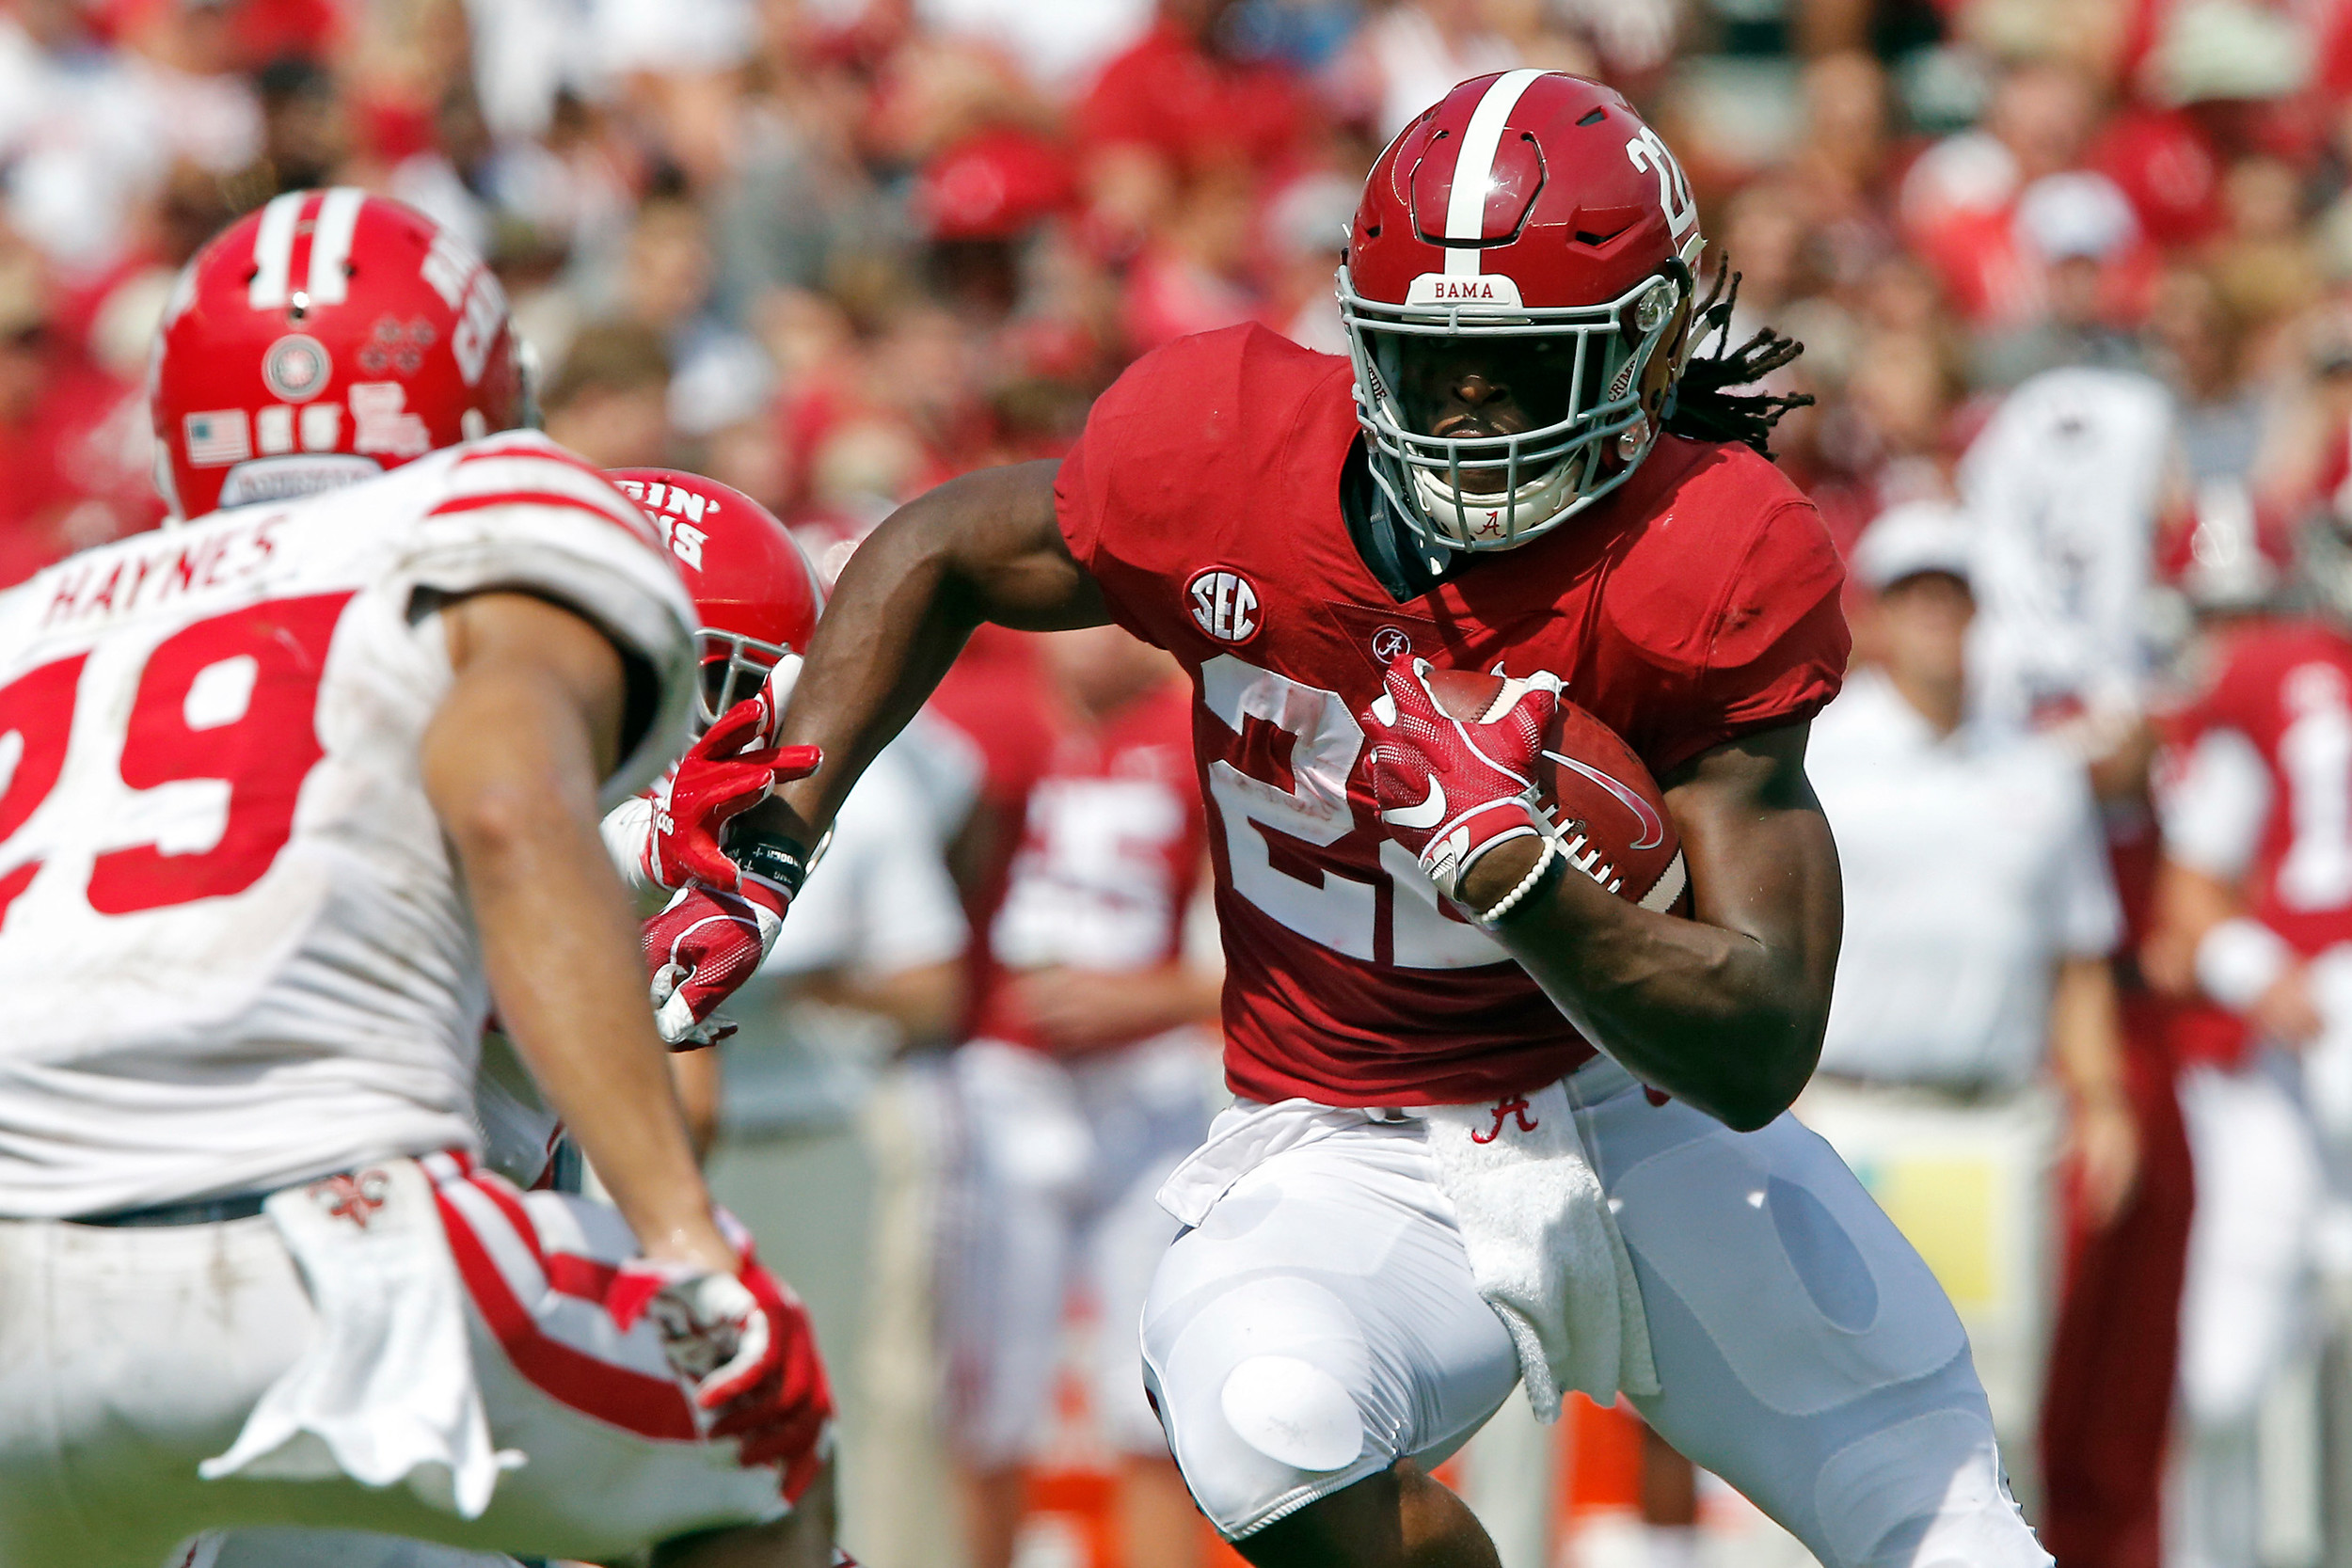 Alabama Crimson Tide running back Najee Harris (22) turns upfield for a gain at Bryant-Denny Stadium in Tuscaloosa, Al on September 29, 2018. Jason Clark / Daily Mountain Eagle